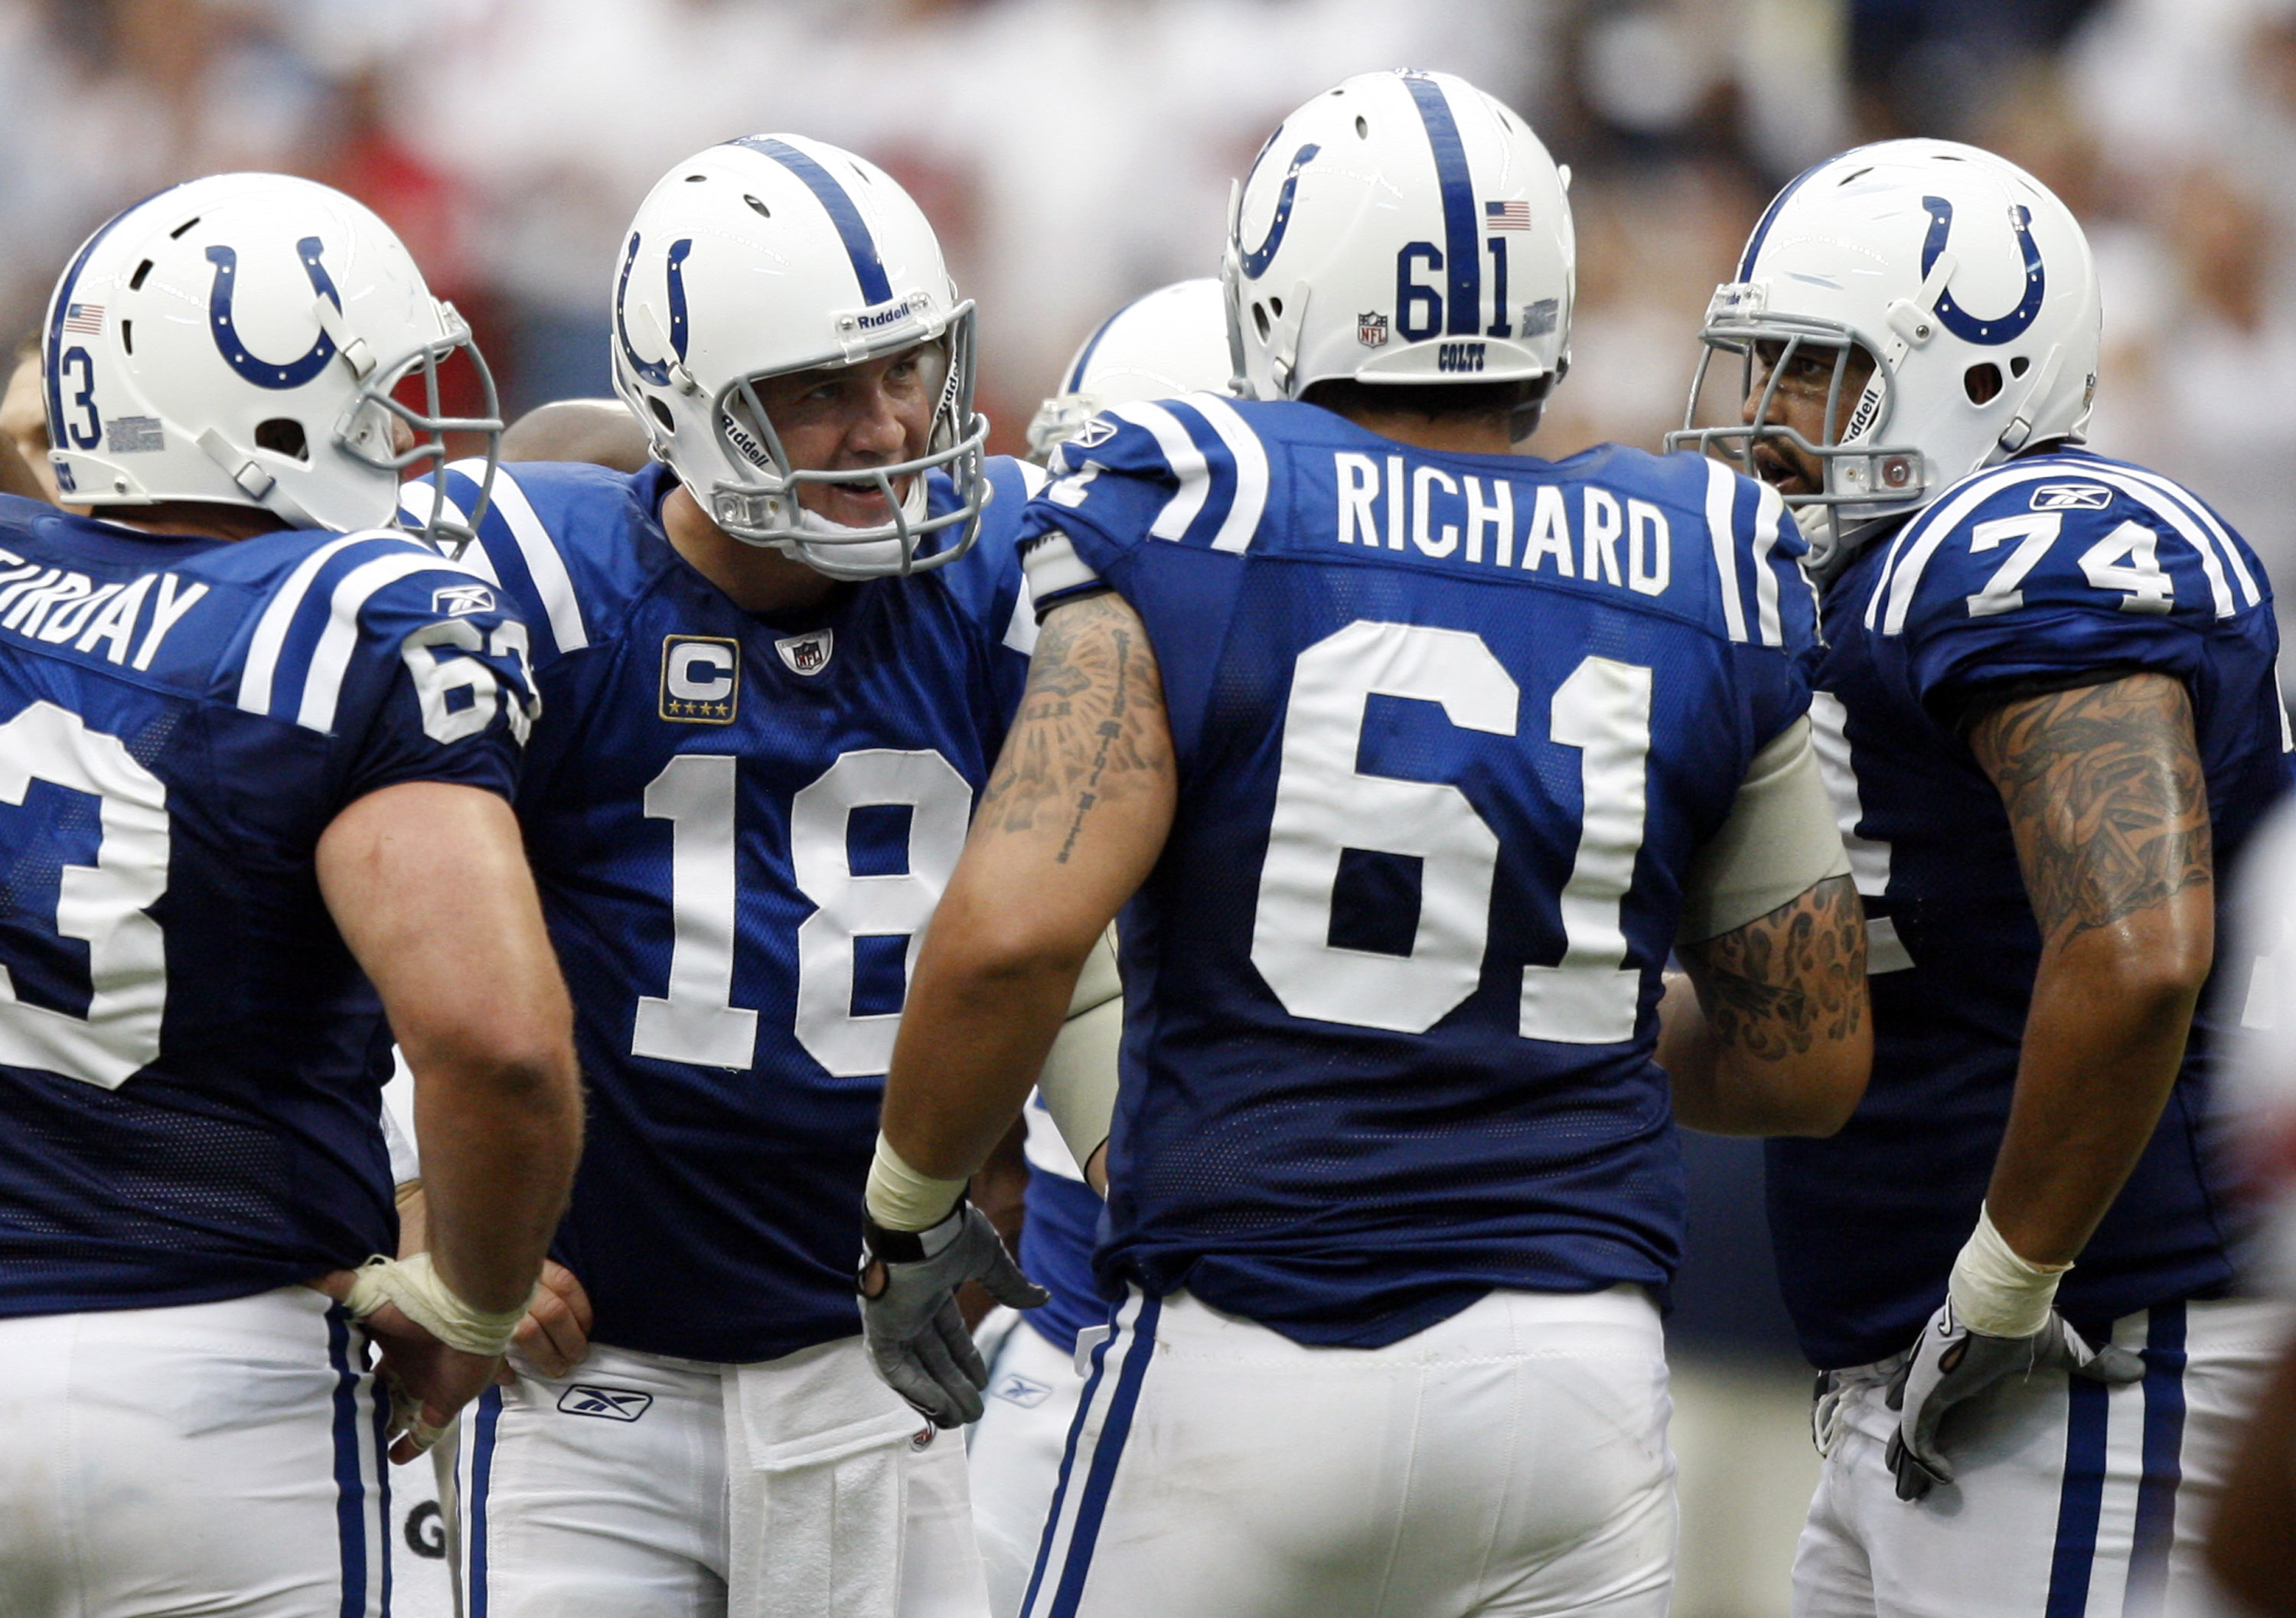 HOUSTON - SEPTEMBER 12:  Quarterback Peyton Manning #18 of the Indianapolis Colts has words with offensive guard Jamey Richard #61 after a delay of game penalty was called during  the NFL seaso1n opener football game against the Houston Texans at Reliant